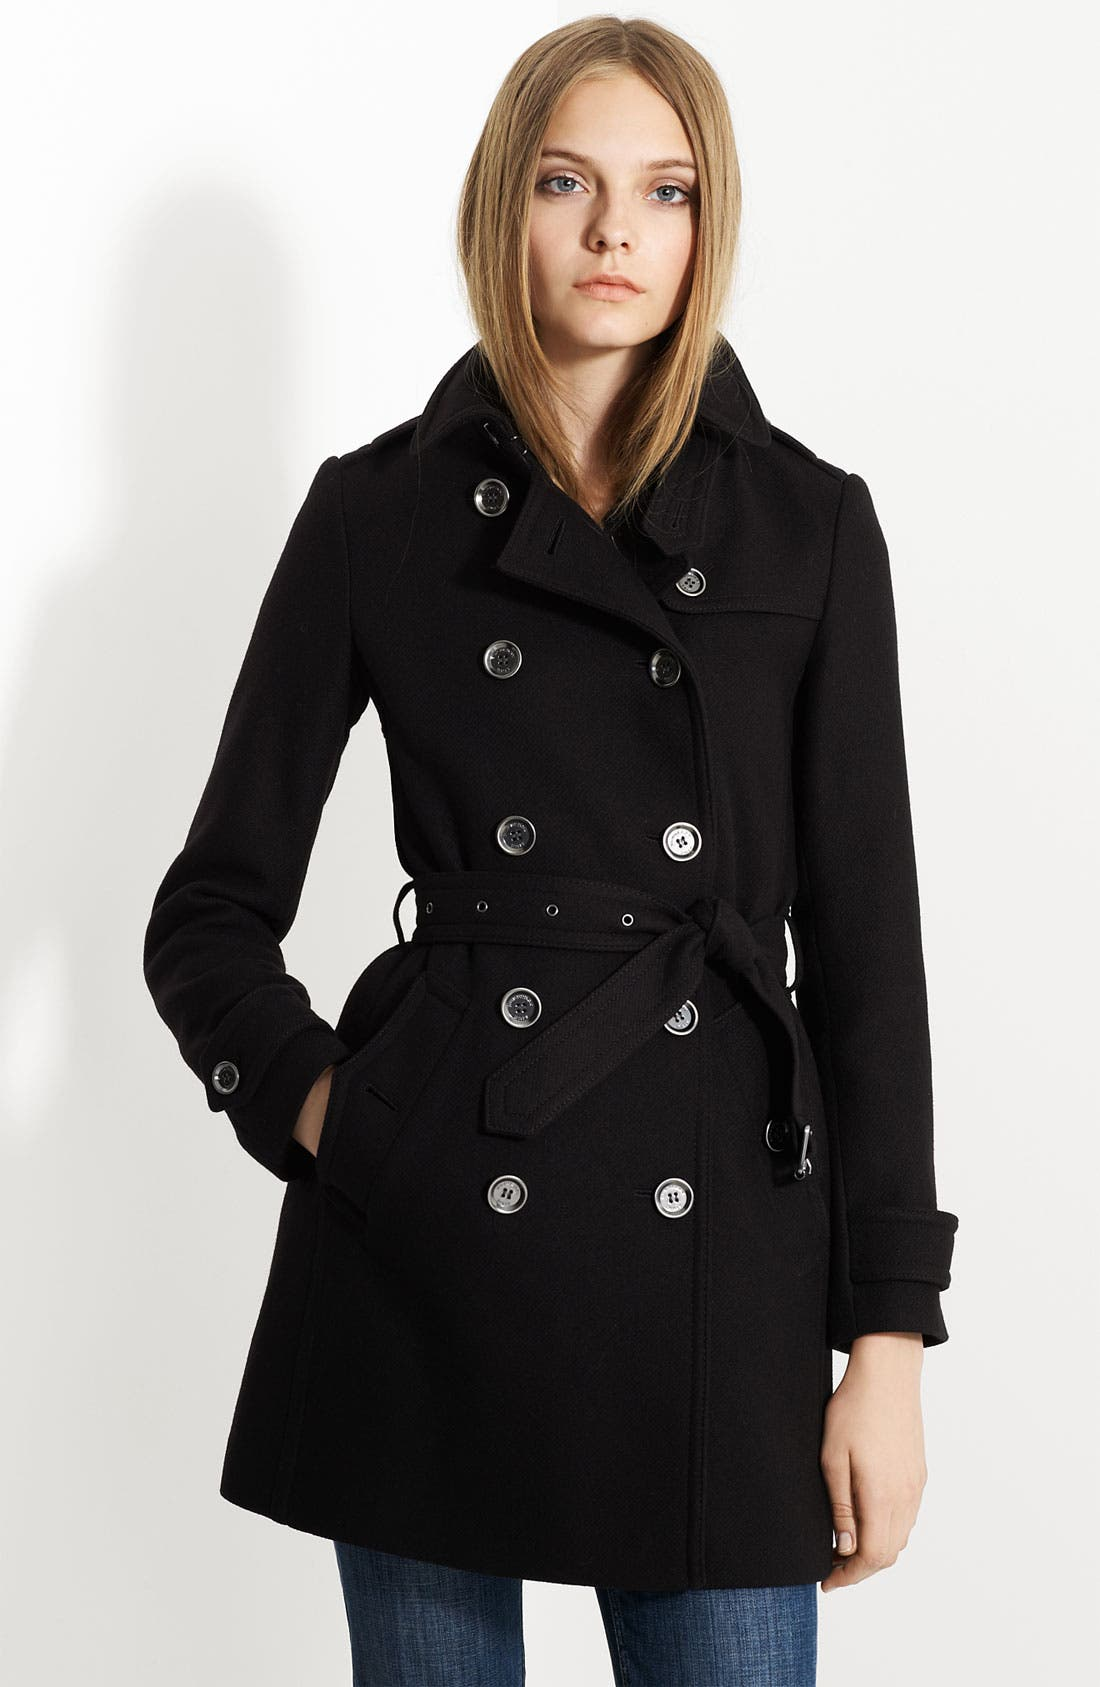 'Balmoral' Wool Blend Trench Coat, Main, color, 001